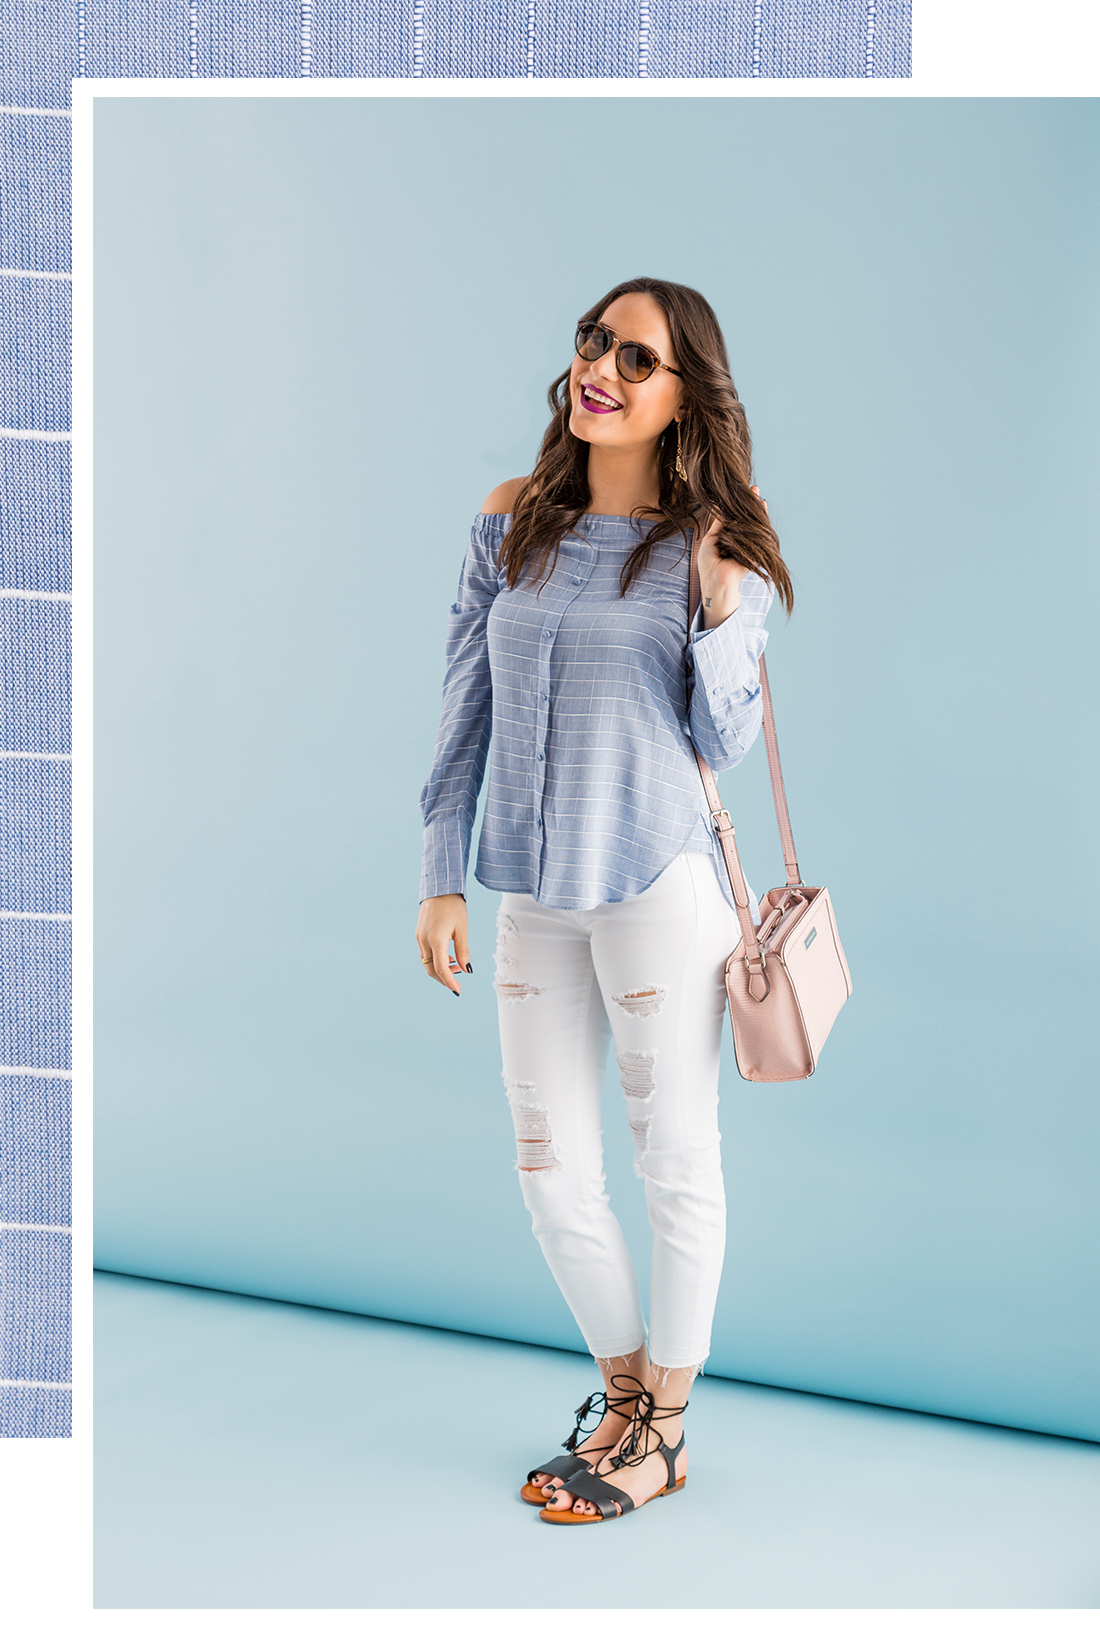 JCP_Spring_Style_Beth_025_Border